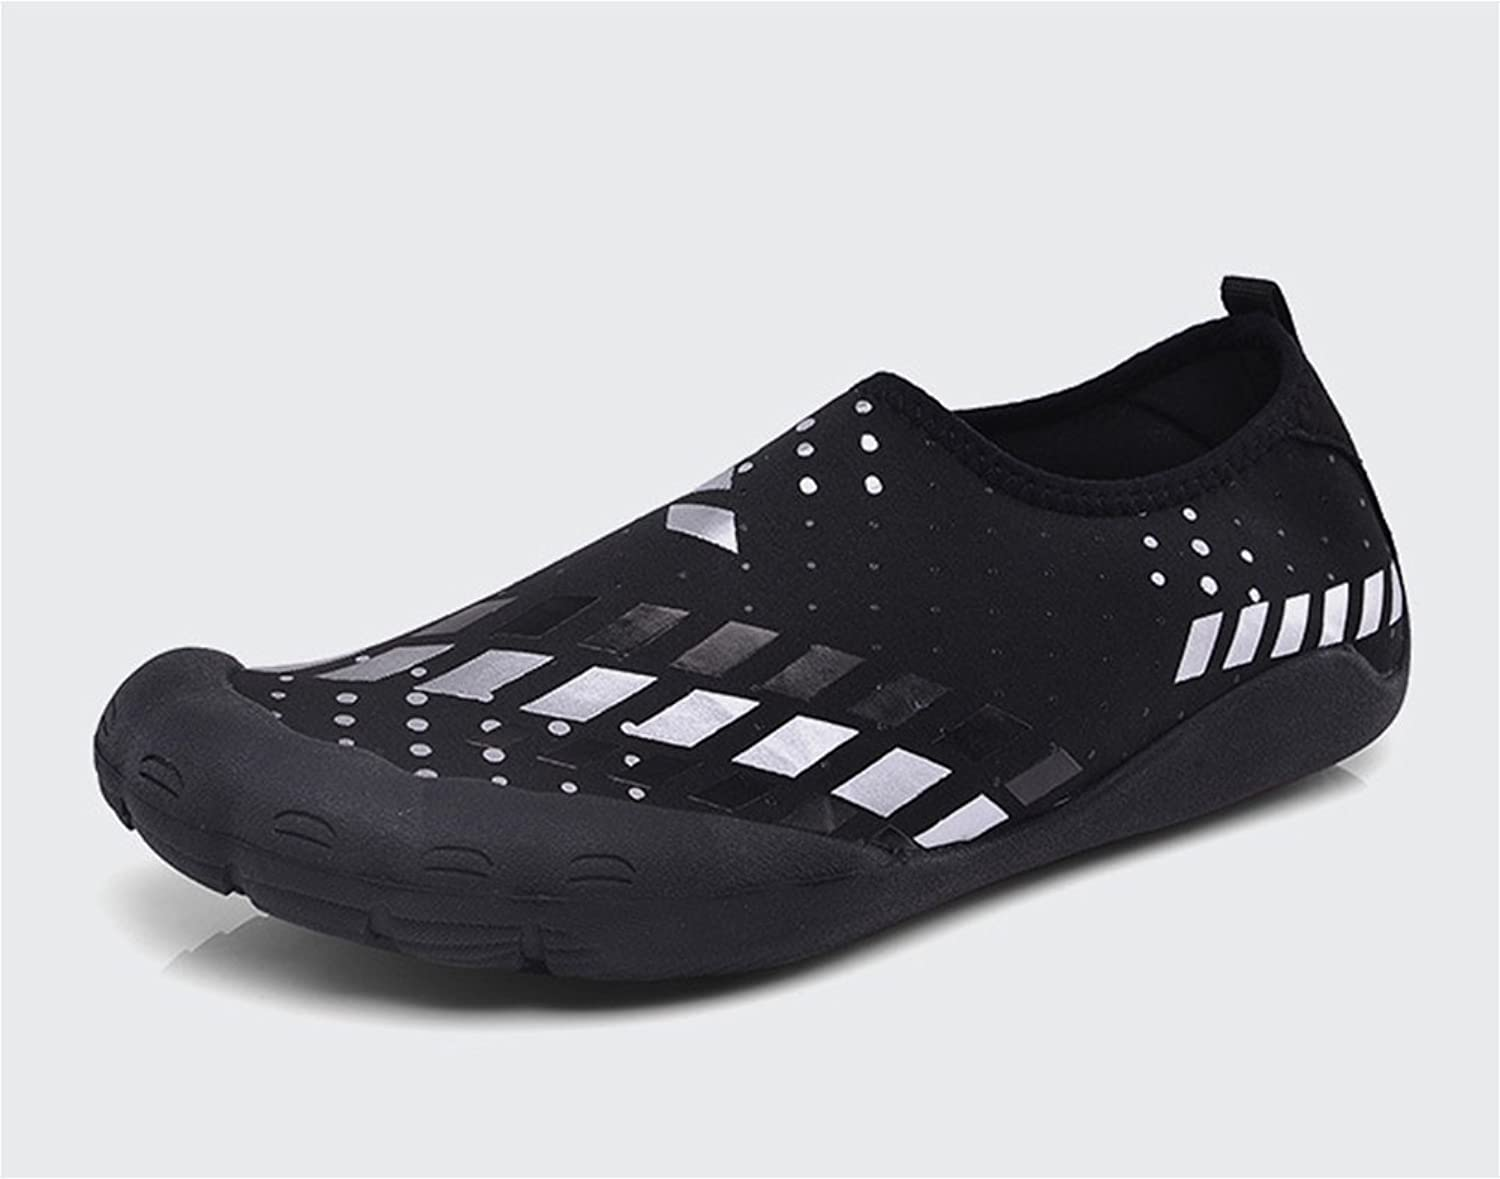 RENMEN Outdoor breathable wear-resistant five-finger shoes fitness upstream wading toe shoes 39-45, black white